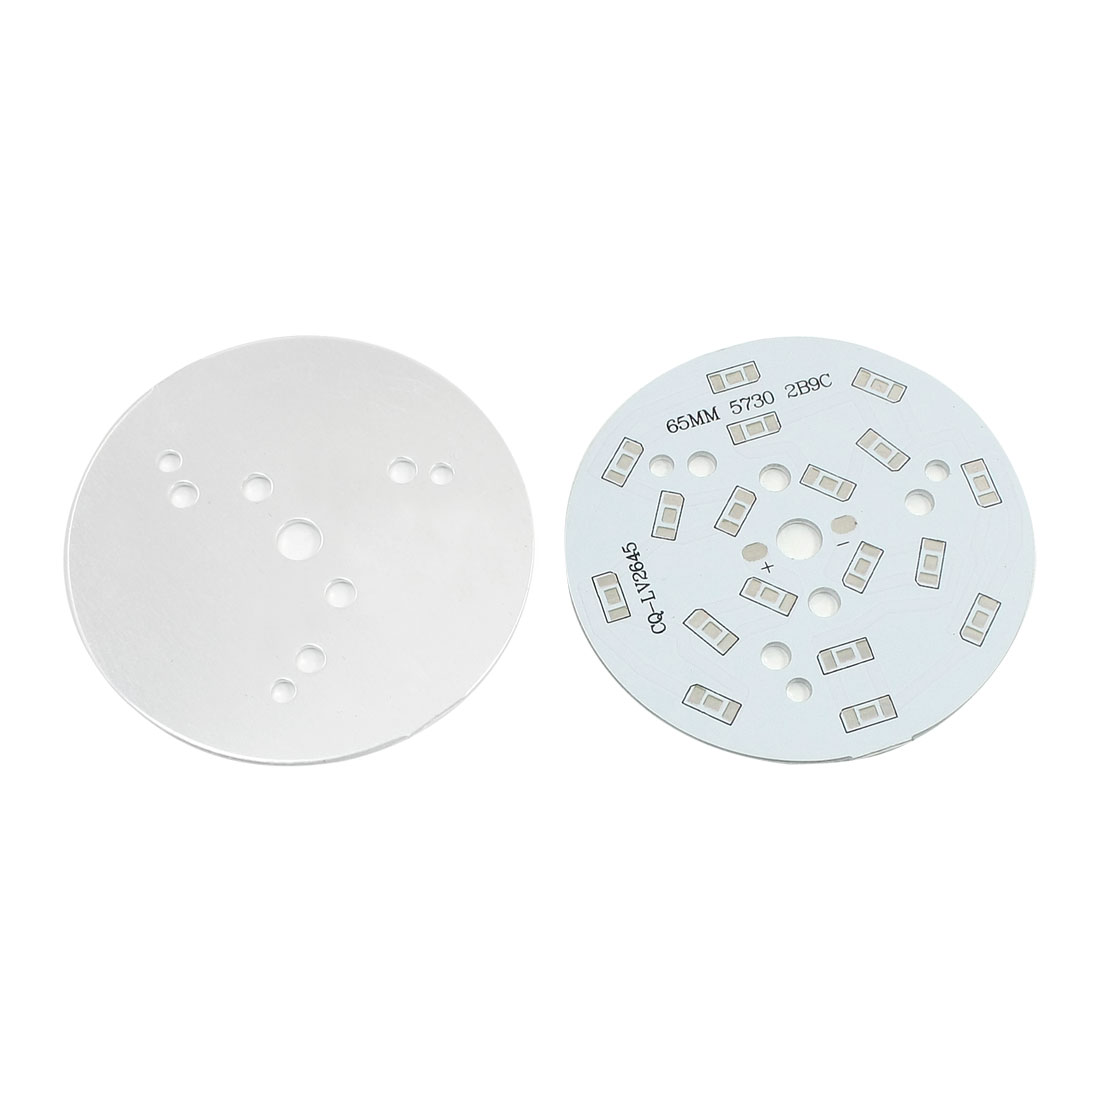 2Pcs 18 x 1/2W 5730 SMD LED High Power DIY Circle Aluminum PCB Circuit Board 65mm Diameter